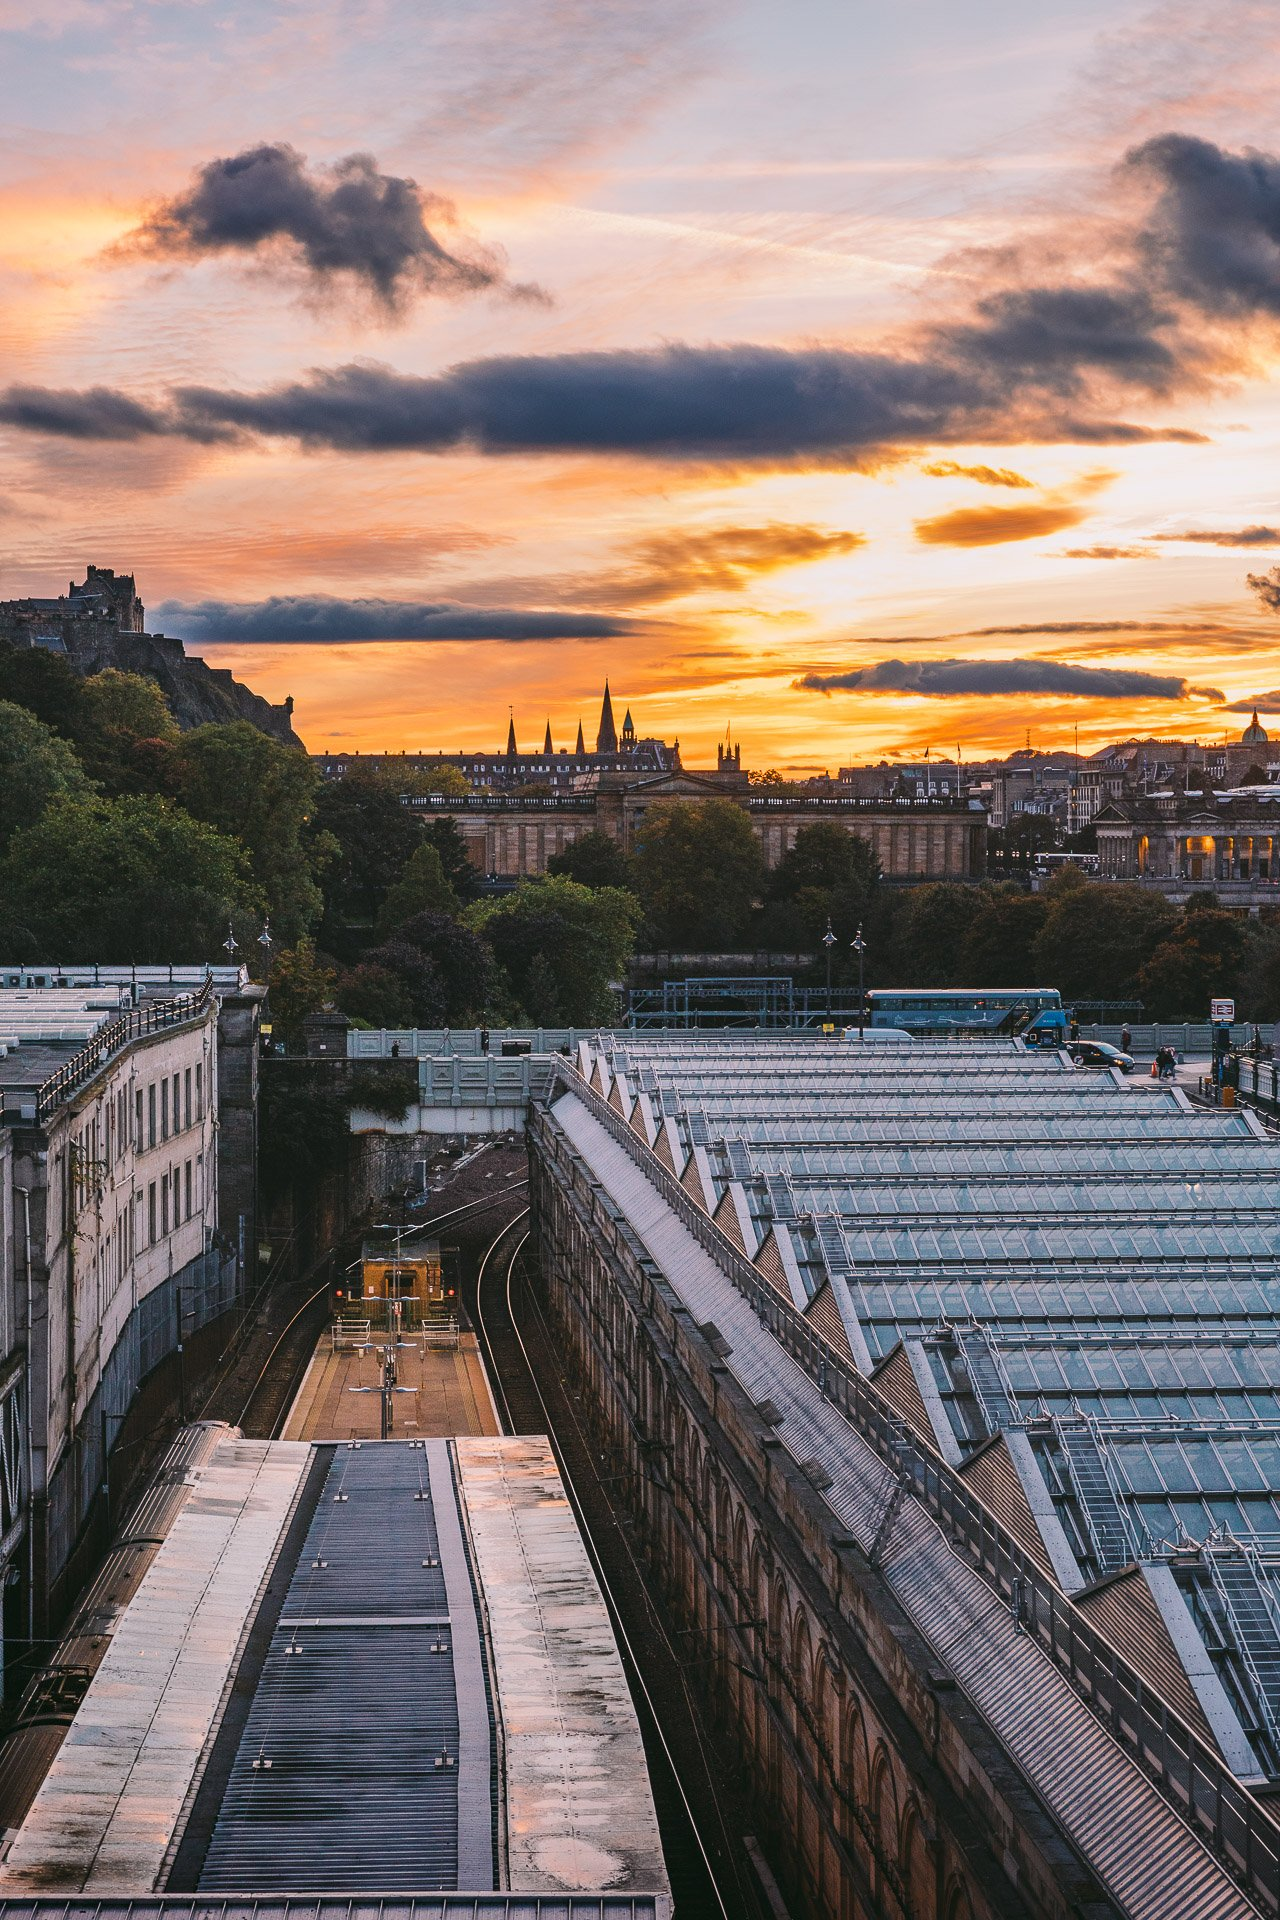 Sunset in Edinburgh | Edinburgh Travel Guide by HonestlyYUM